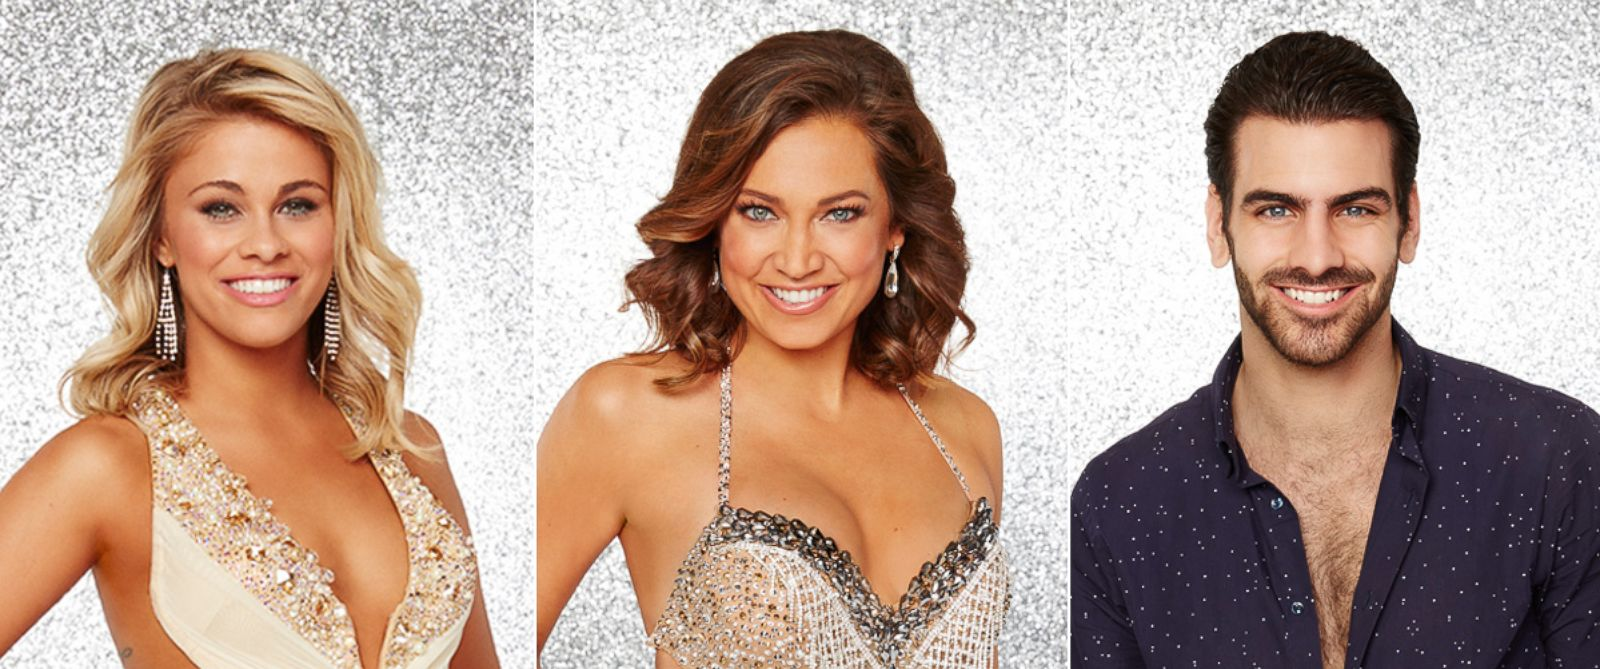 DWTS' 2016: Paige VanZant, Ginger Zee and Nyle DiMarco Battle It ...